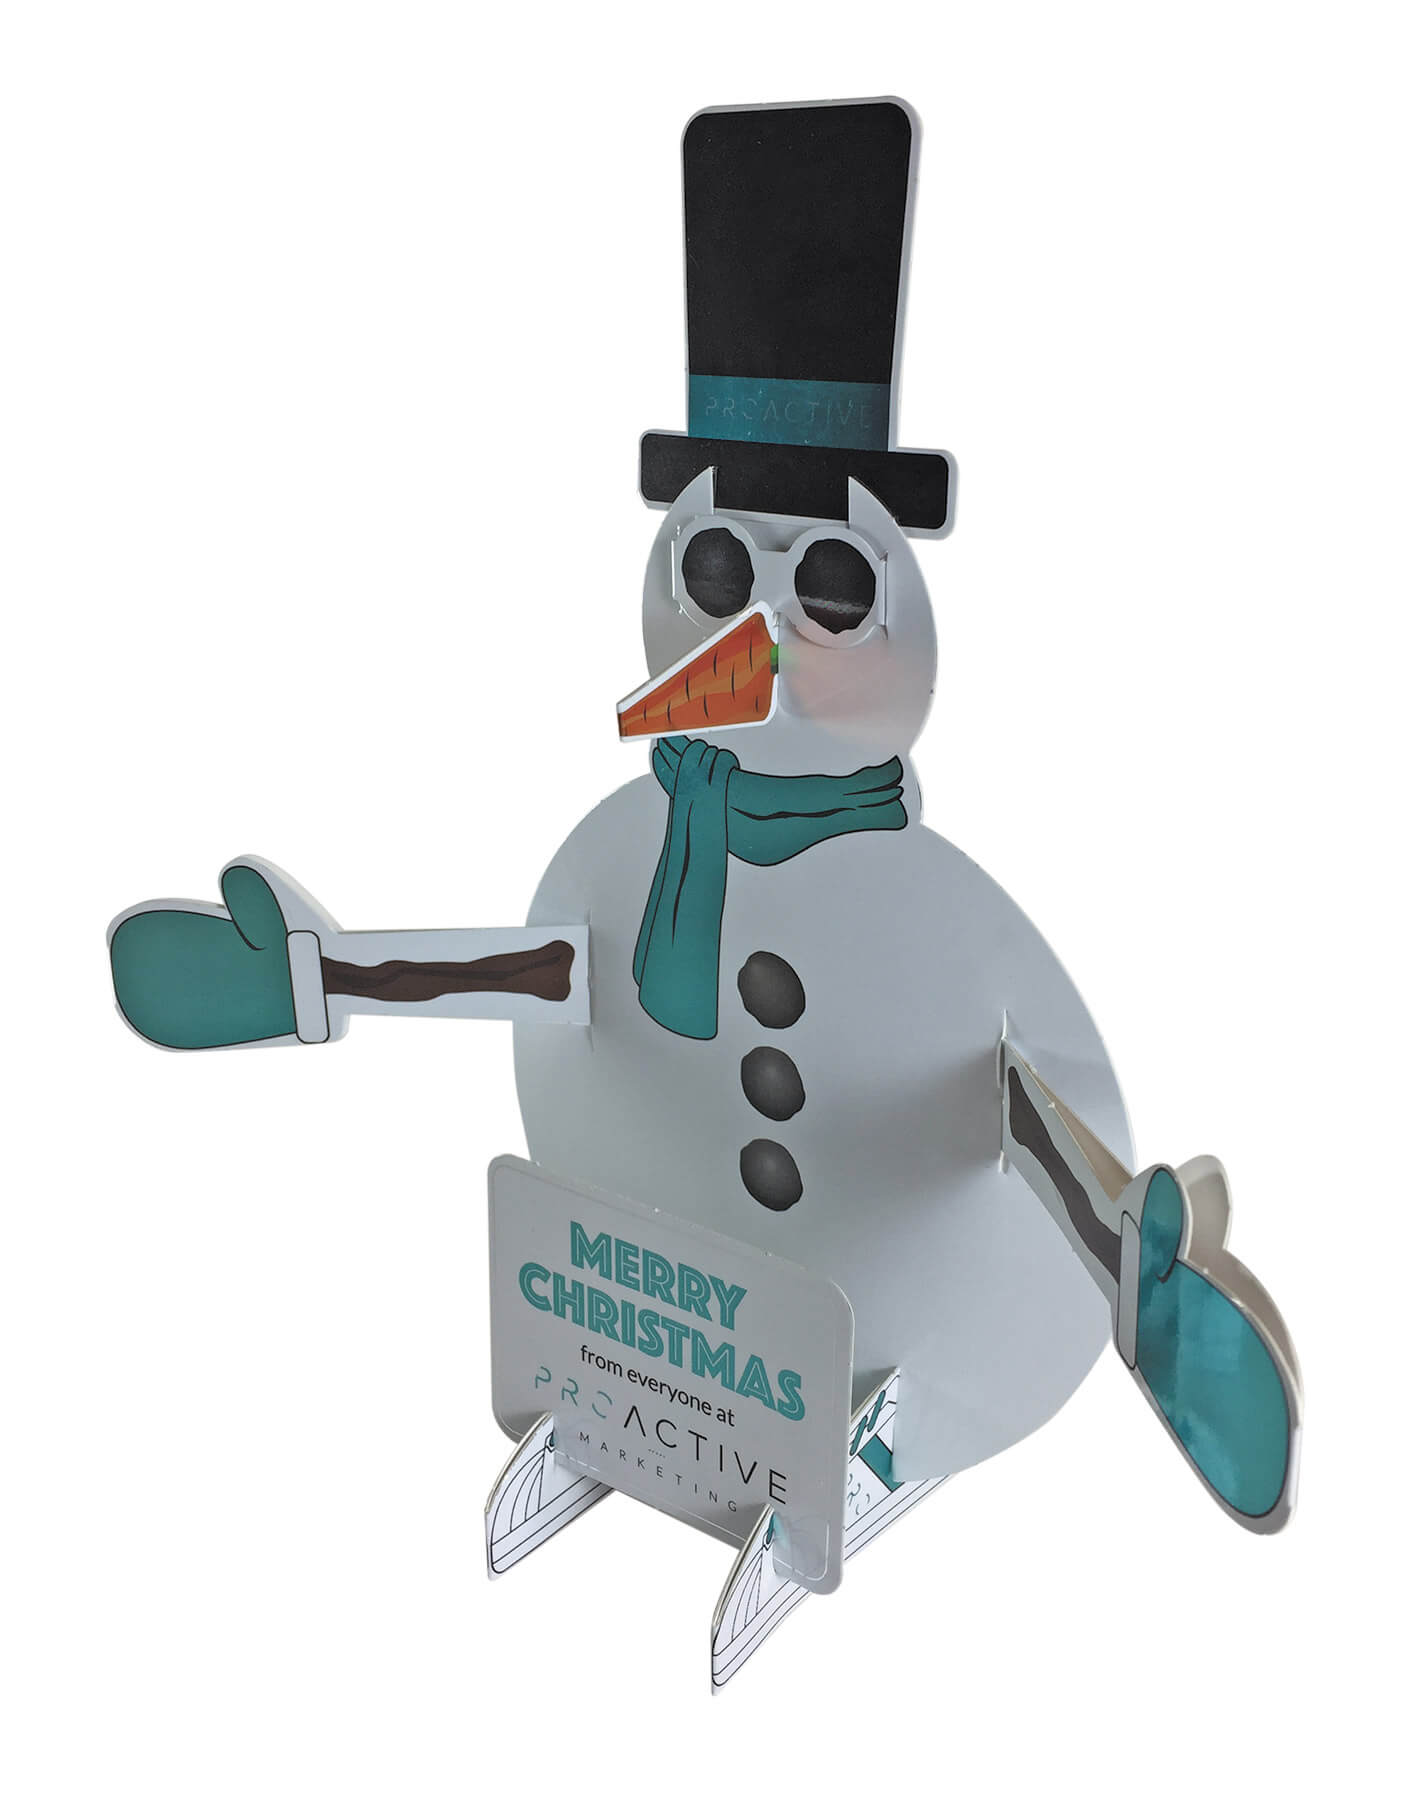 Christmas card printing - Cut-out Snowman